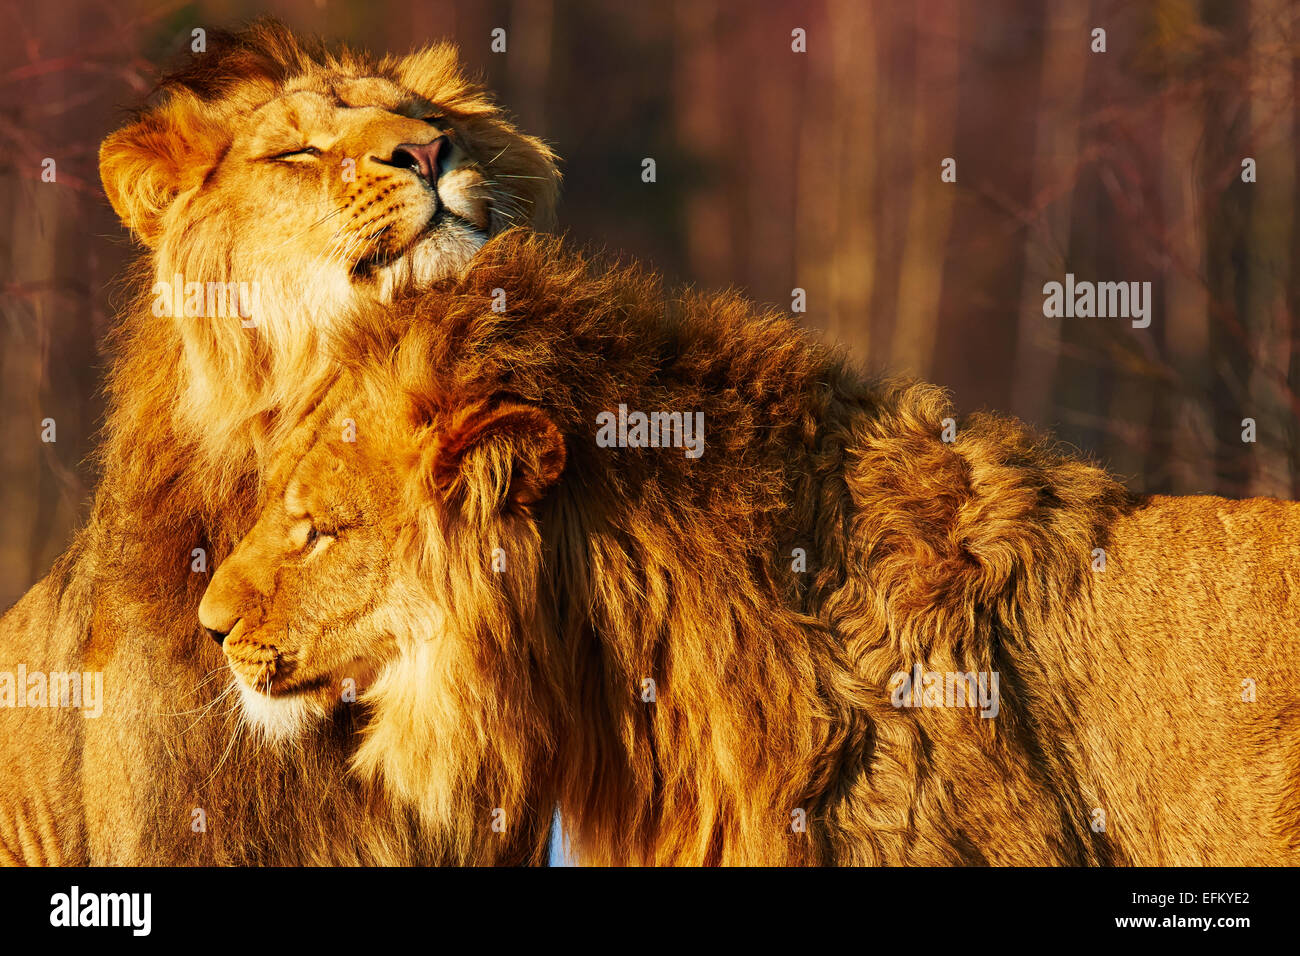 Two lion brothers close together in a forest - Stock Image